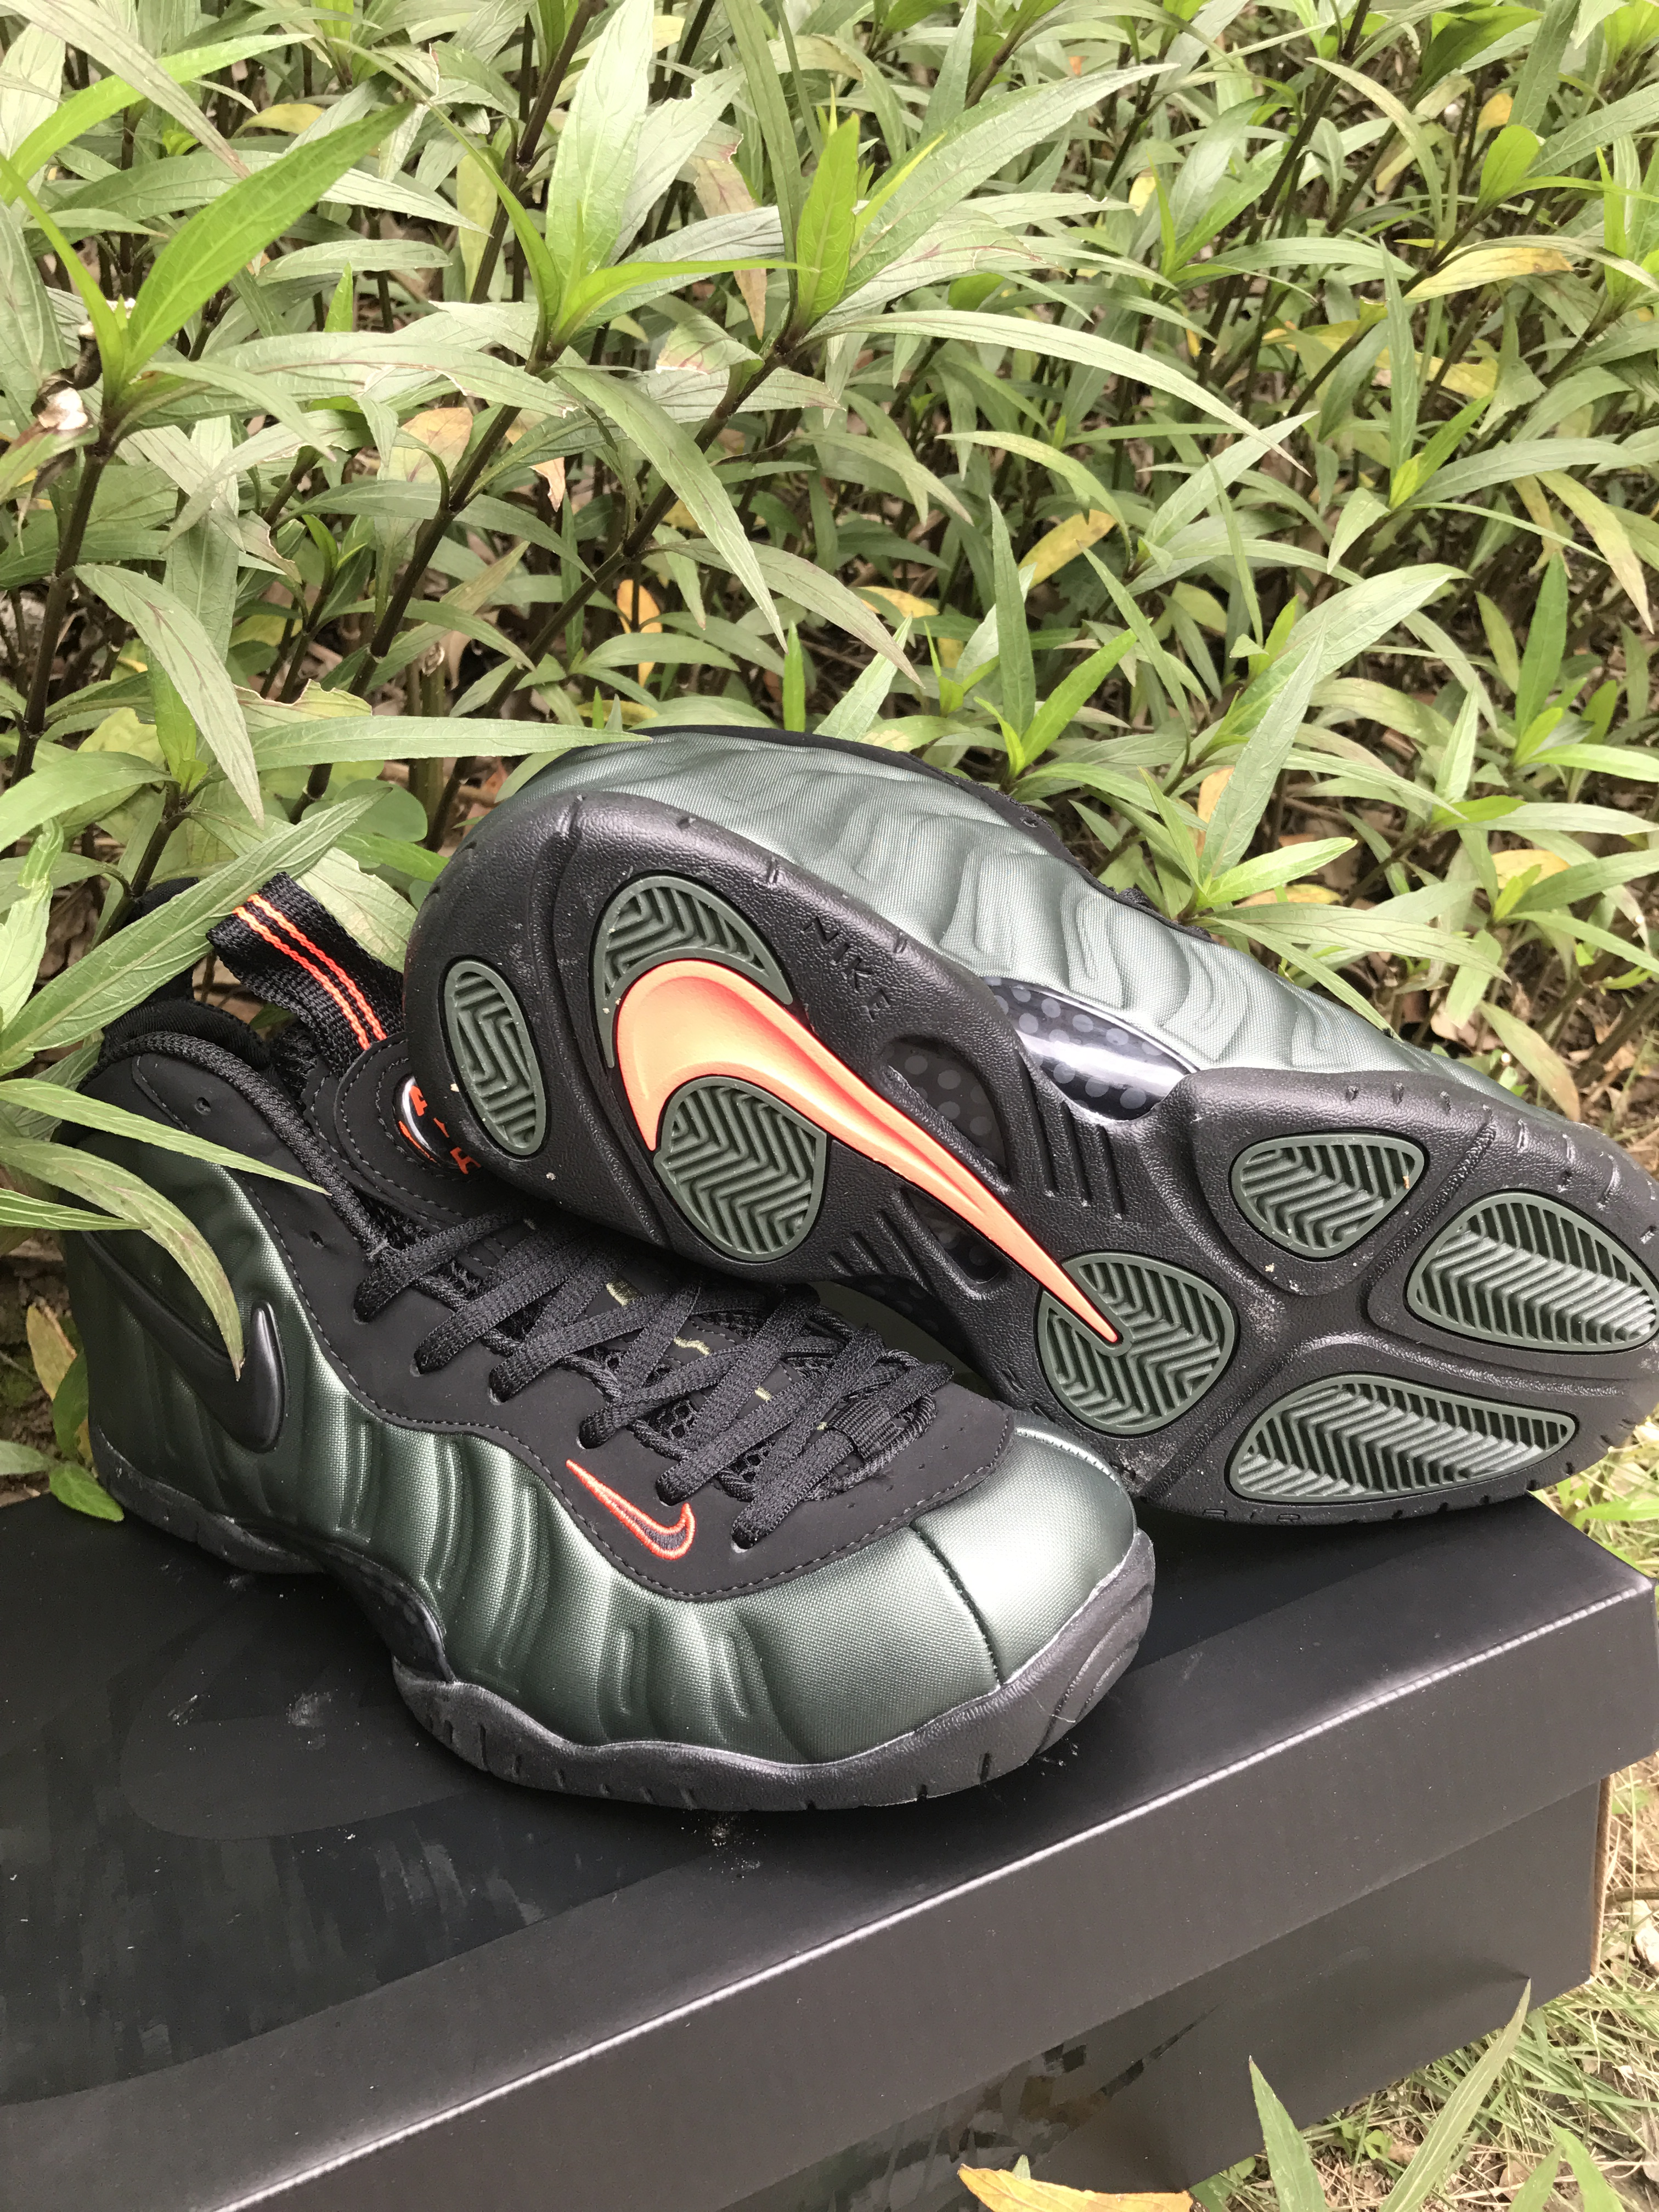 the best attitude 6f43a 674ec Nike Air Foamposite Pro Sequoia 2018 Mens Nike Foamposites Basketball Shoes  SD66 - Getfashionsstore.